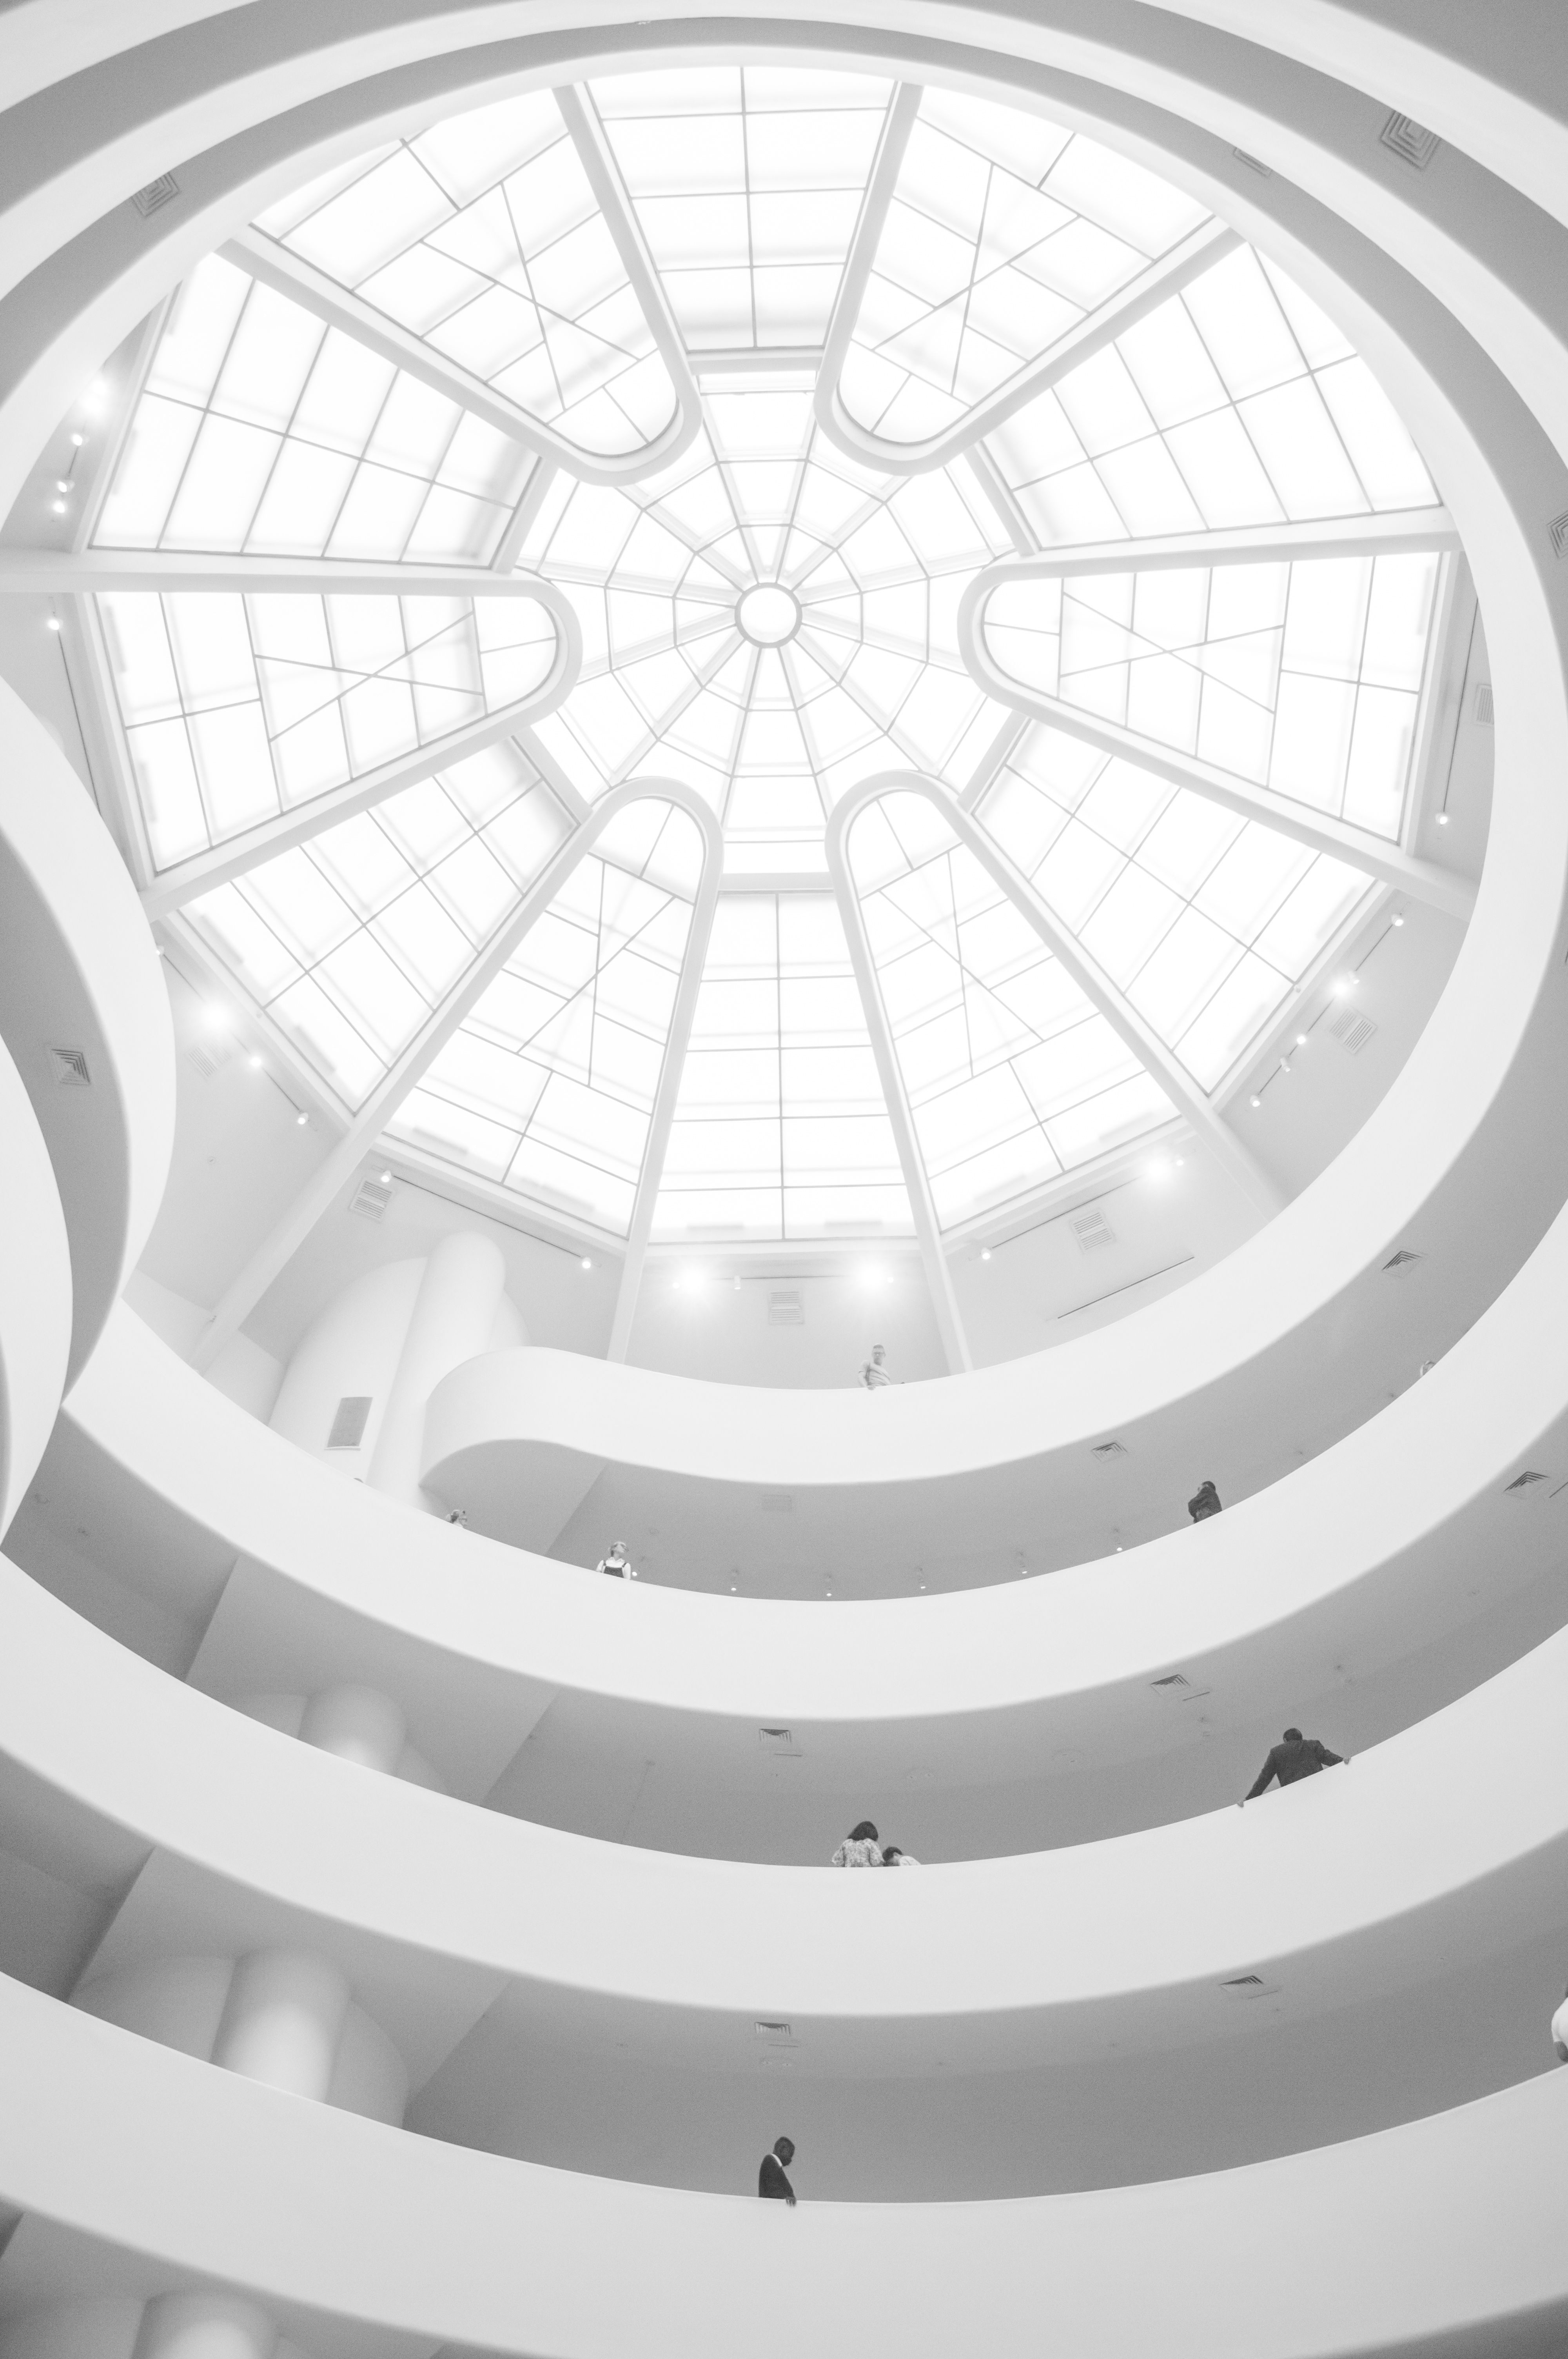 Inside New York Guggenheim museum, guggenheim, architecture, white, black and white, glow, light, interior, inside, art, modern, new york